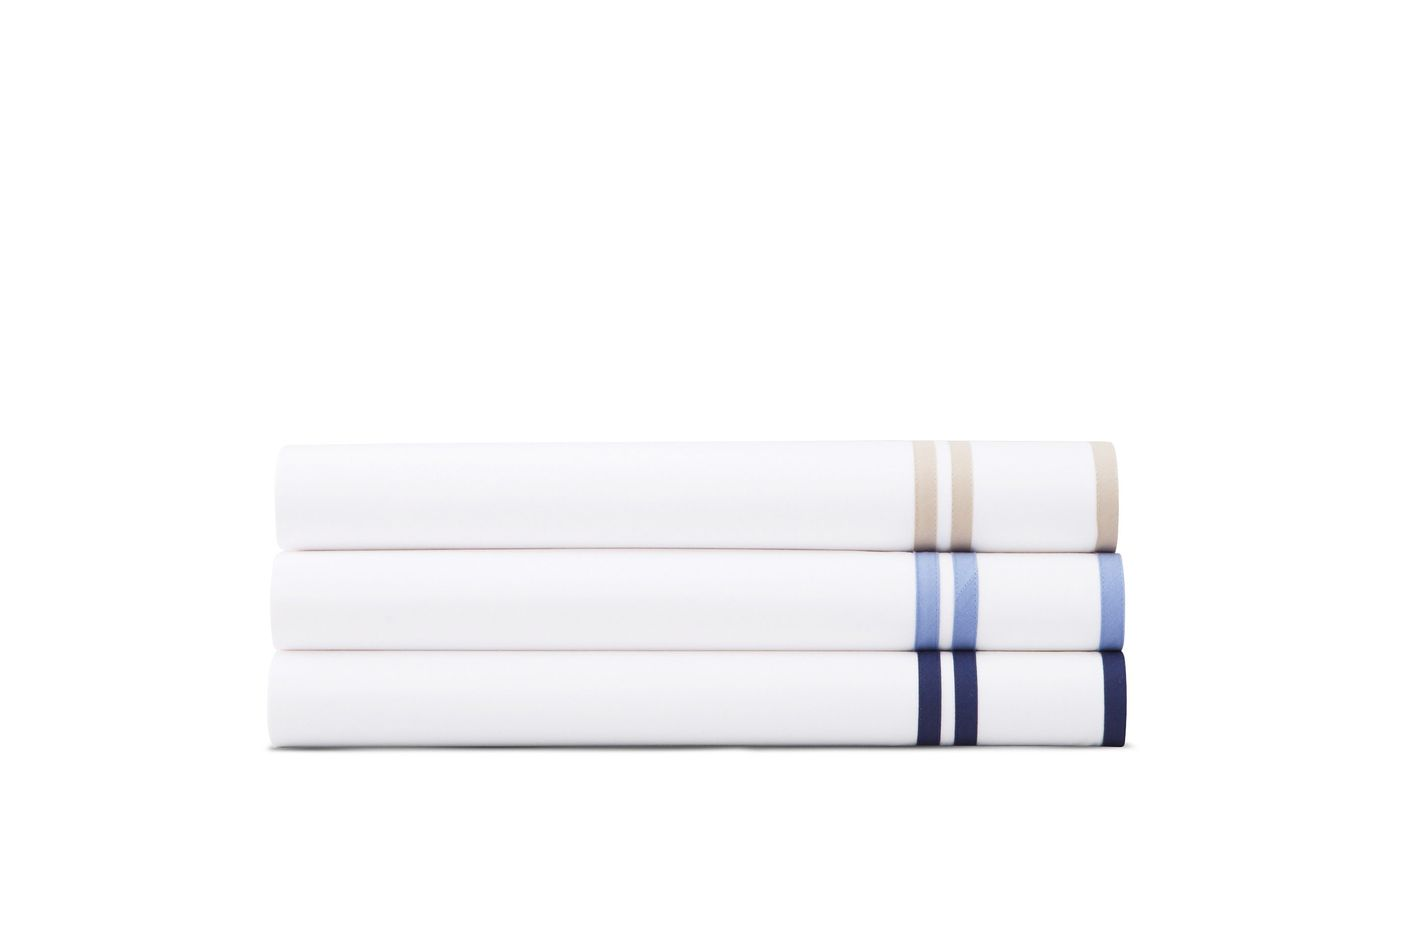 Best places to buy bedding -  The Go To Sheets I Choose For The Majority Of My Projects Clients Love Them For Their Comfort And Accessibility While I Love Their Simple Designs